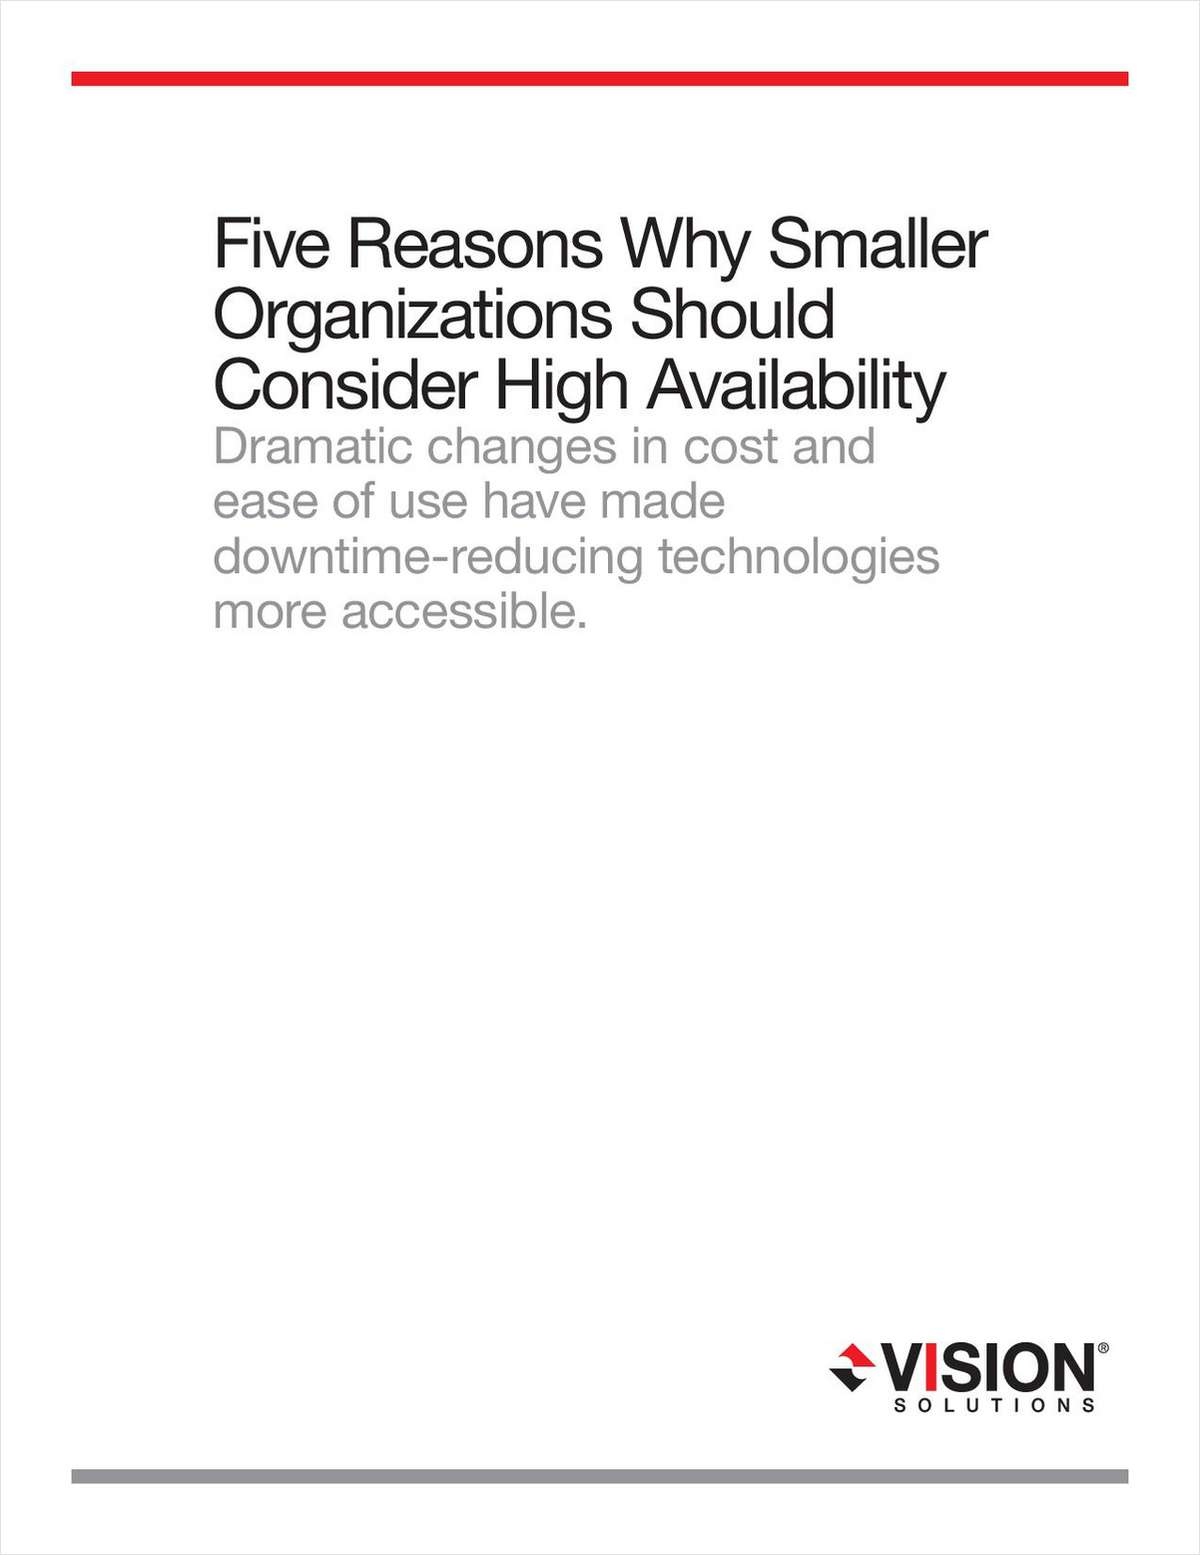 Five Reasons Why Smaller Organizations Should Consider System i (AS/400) High Availability